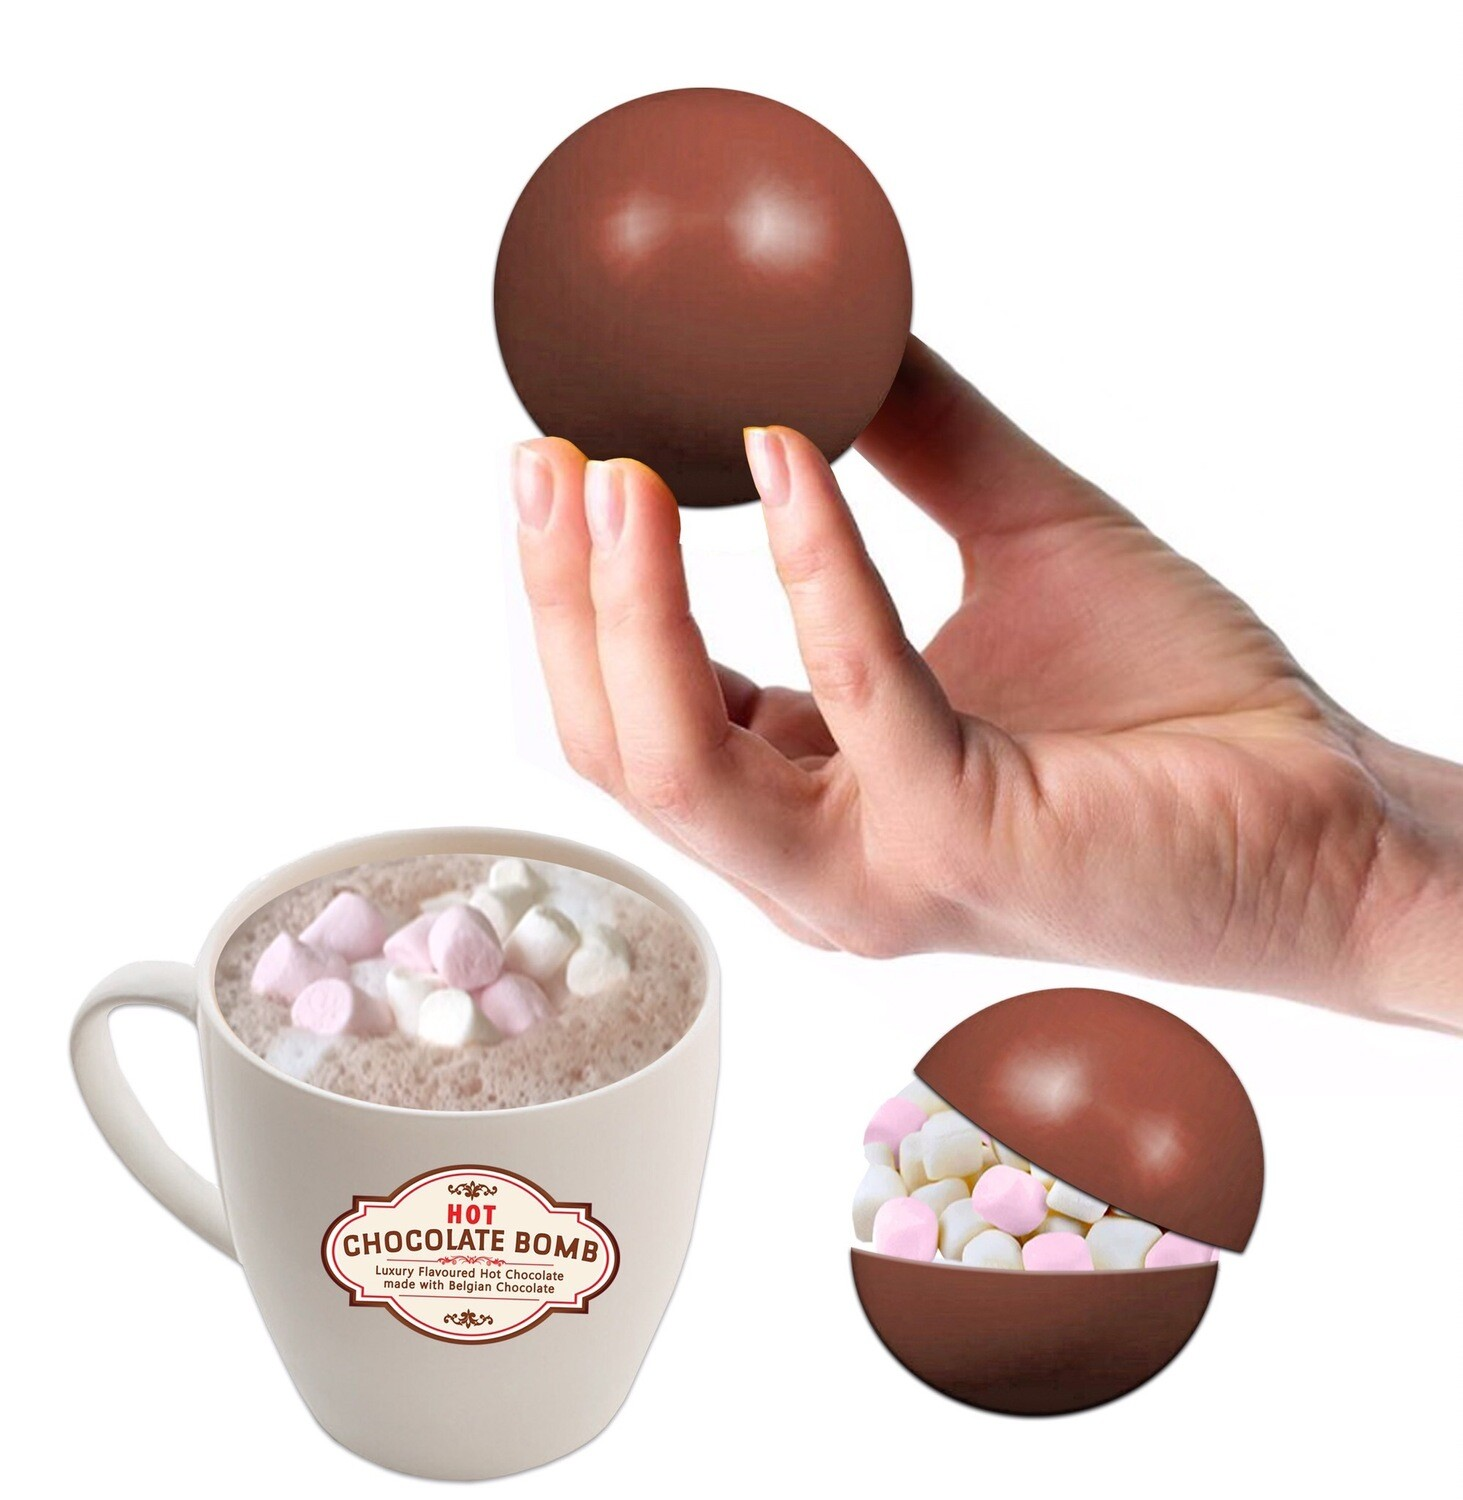 2 BELGIAN Hot Chocolate Bombs filled with mini Marshmallows